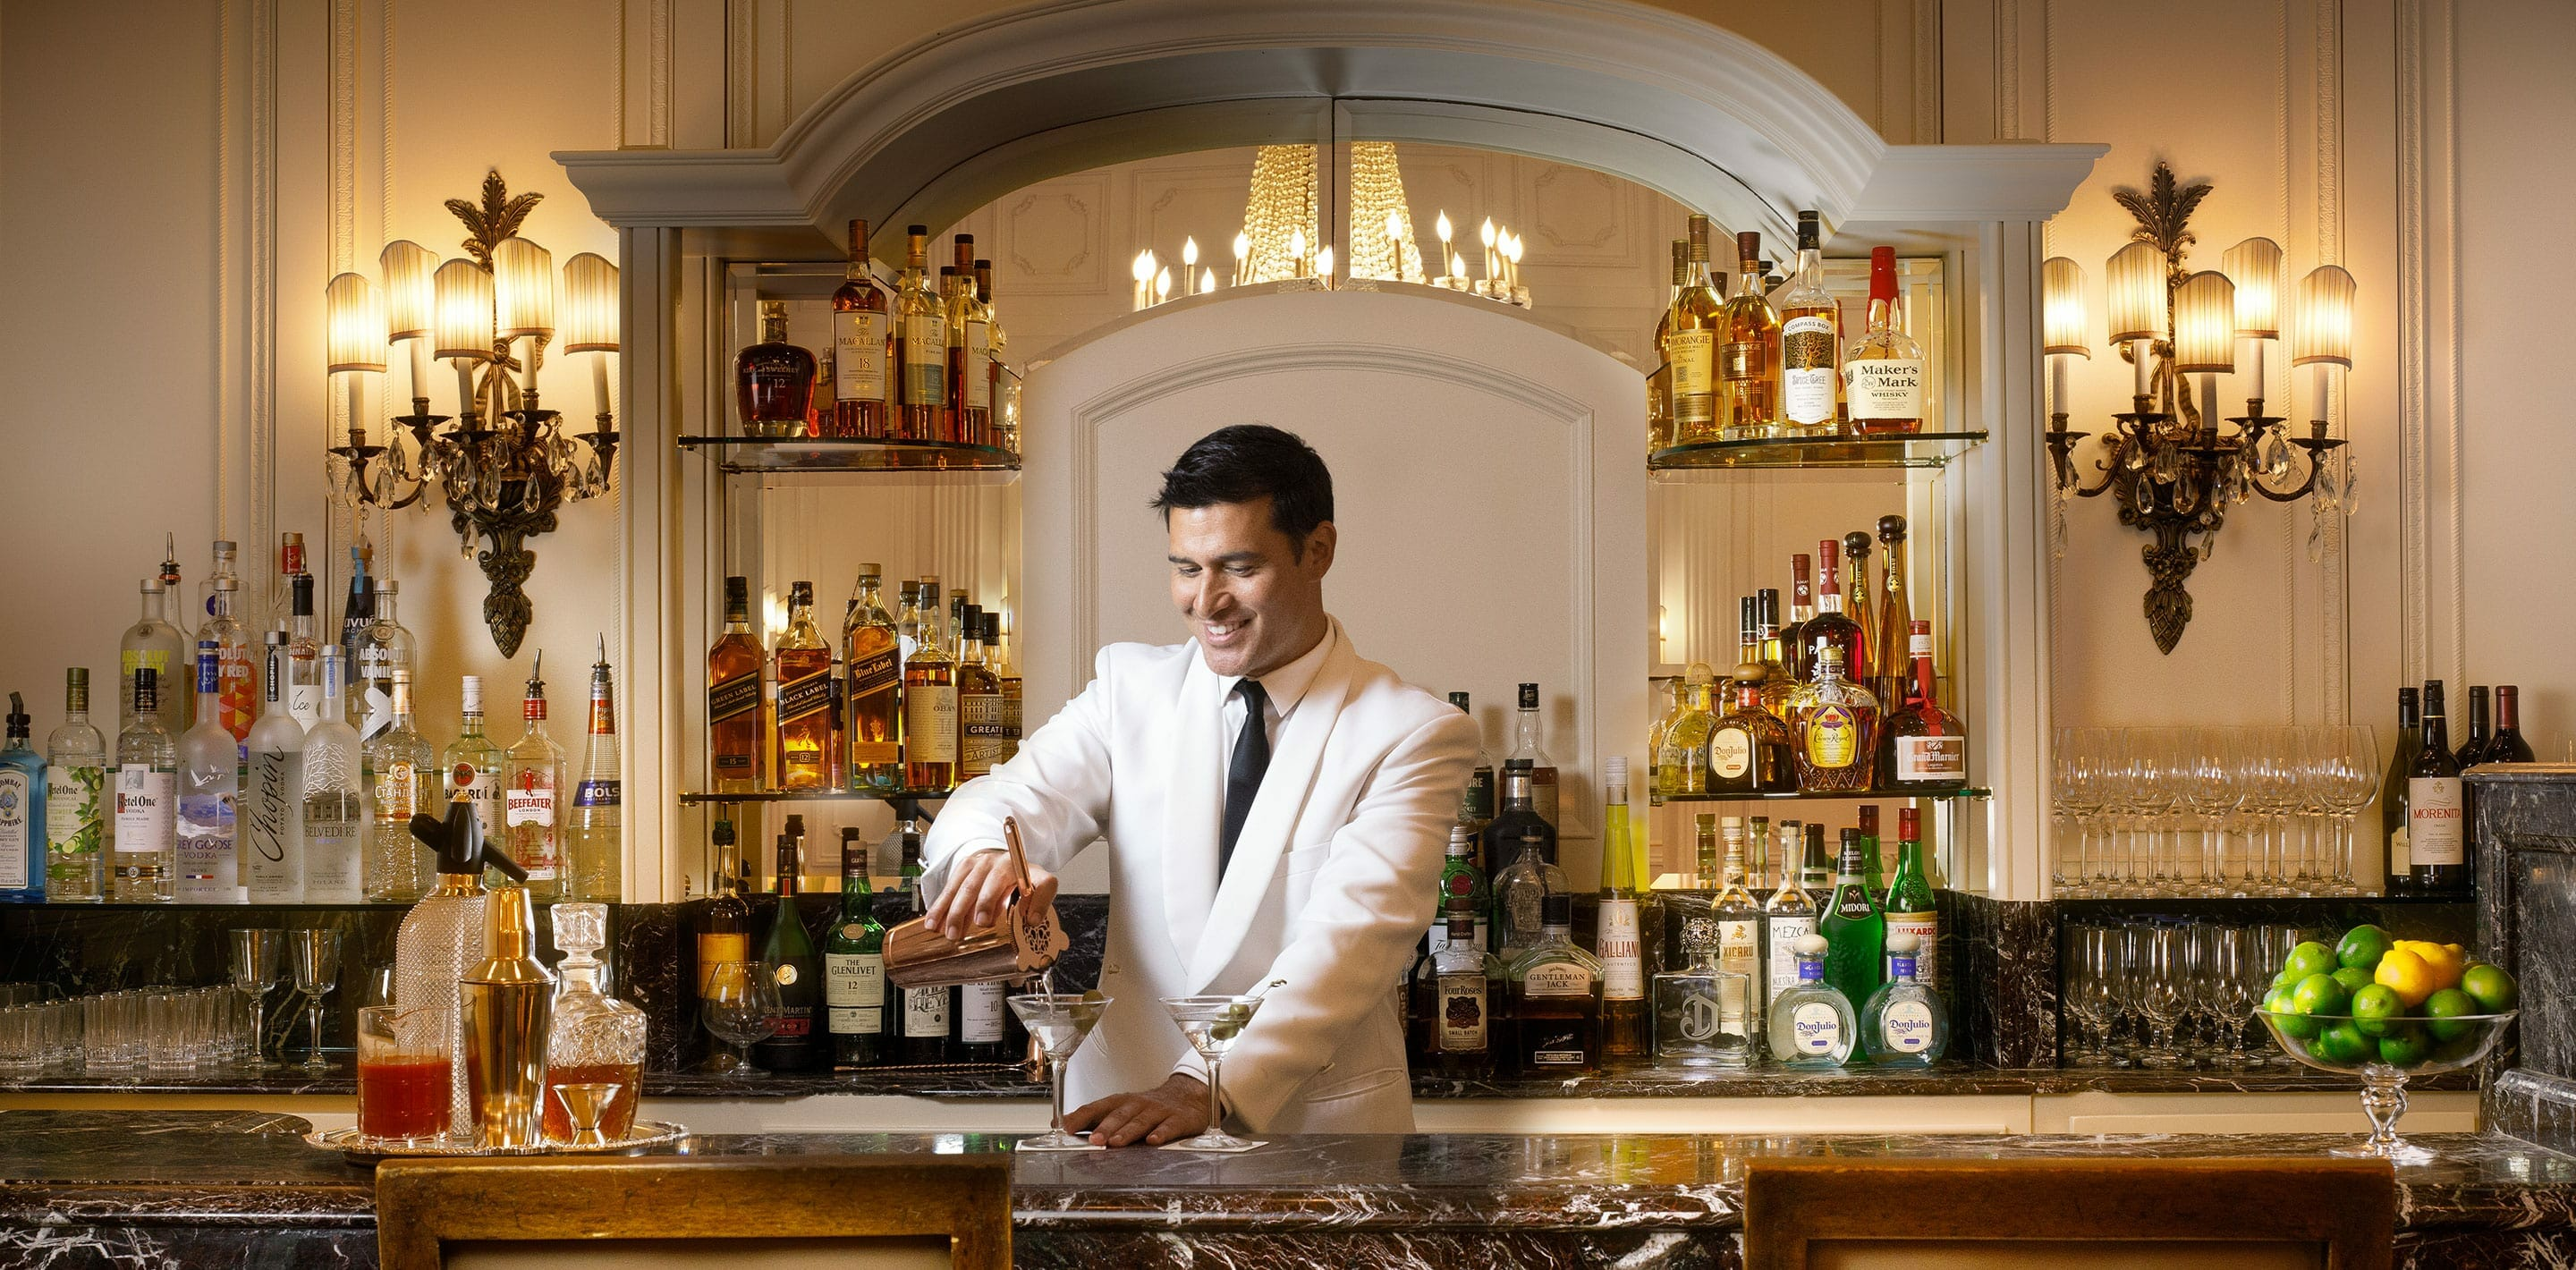 Bartender making a drink behind the counter of the Westgate Hotel Plaza Bar